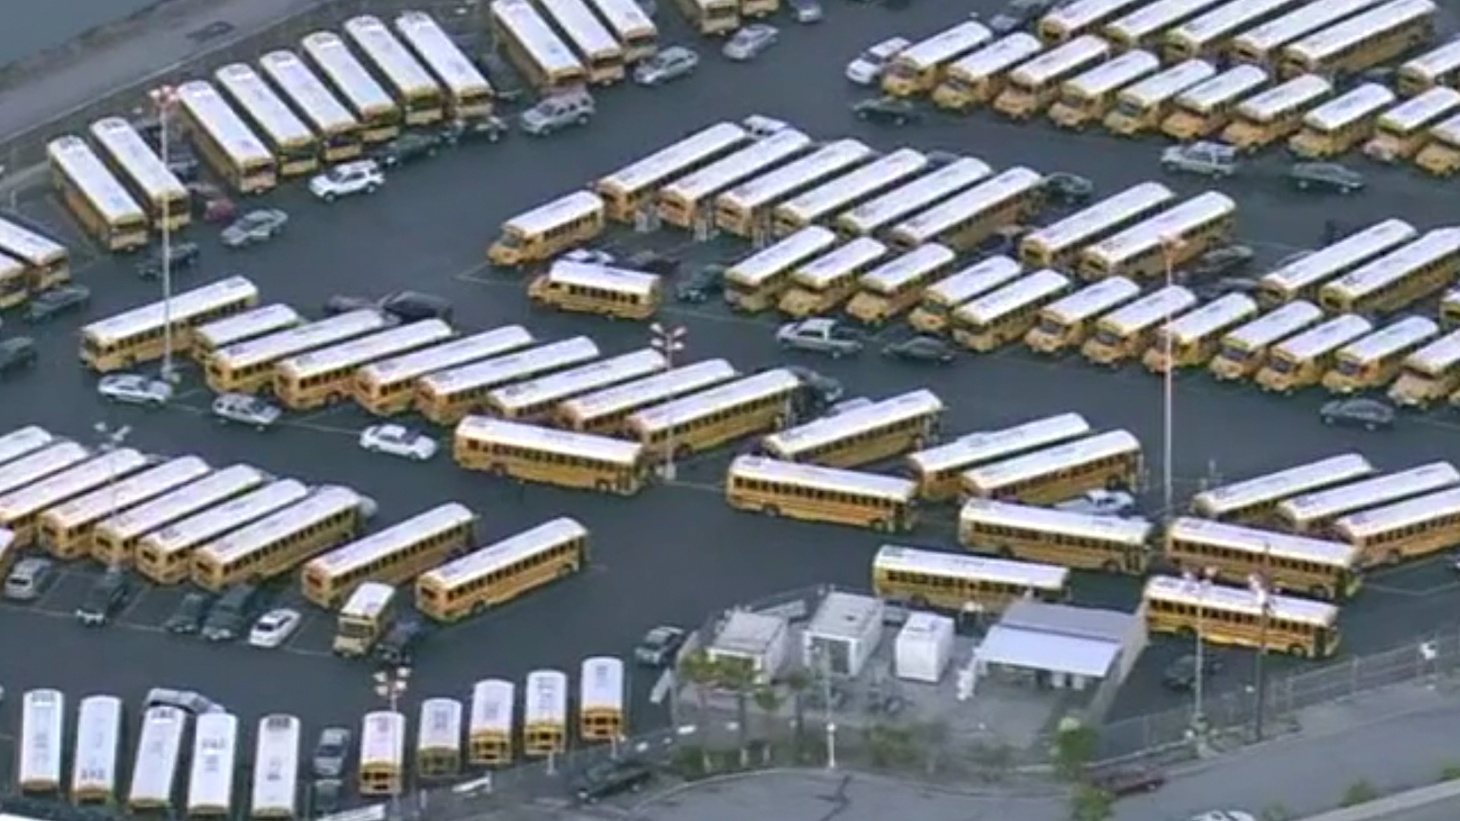 The LAUSD closed all 900 of its schools today because of an electronic threat. What do we know?